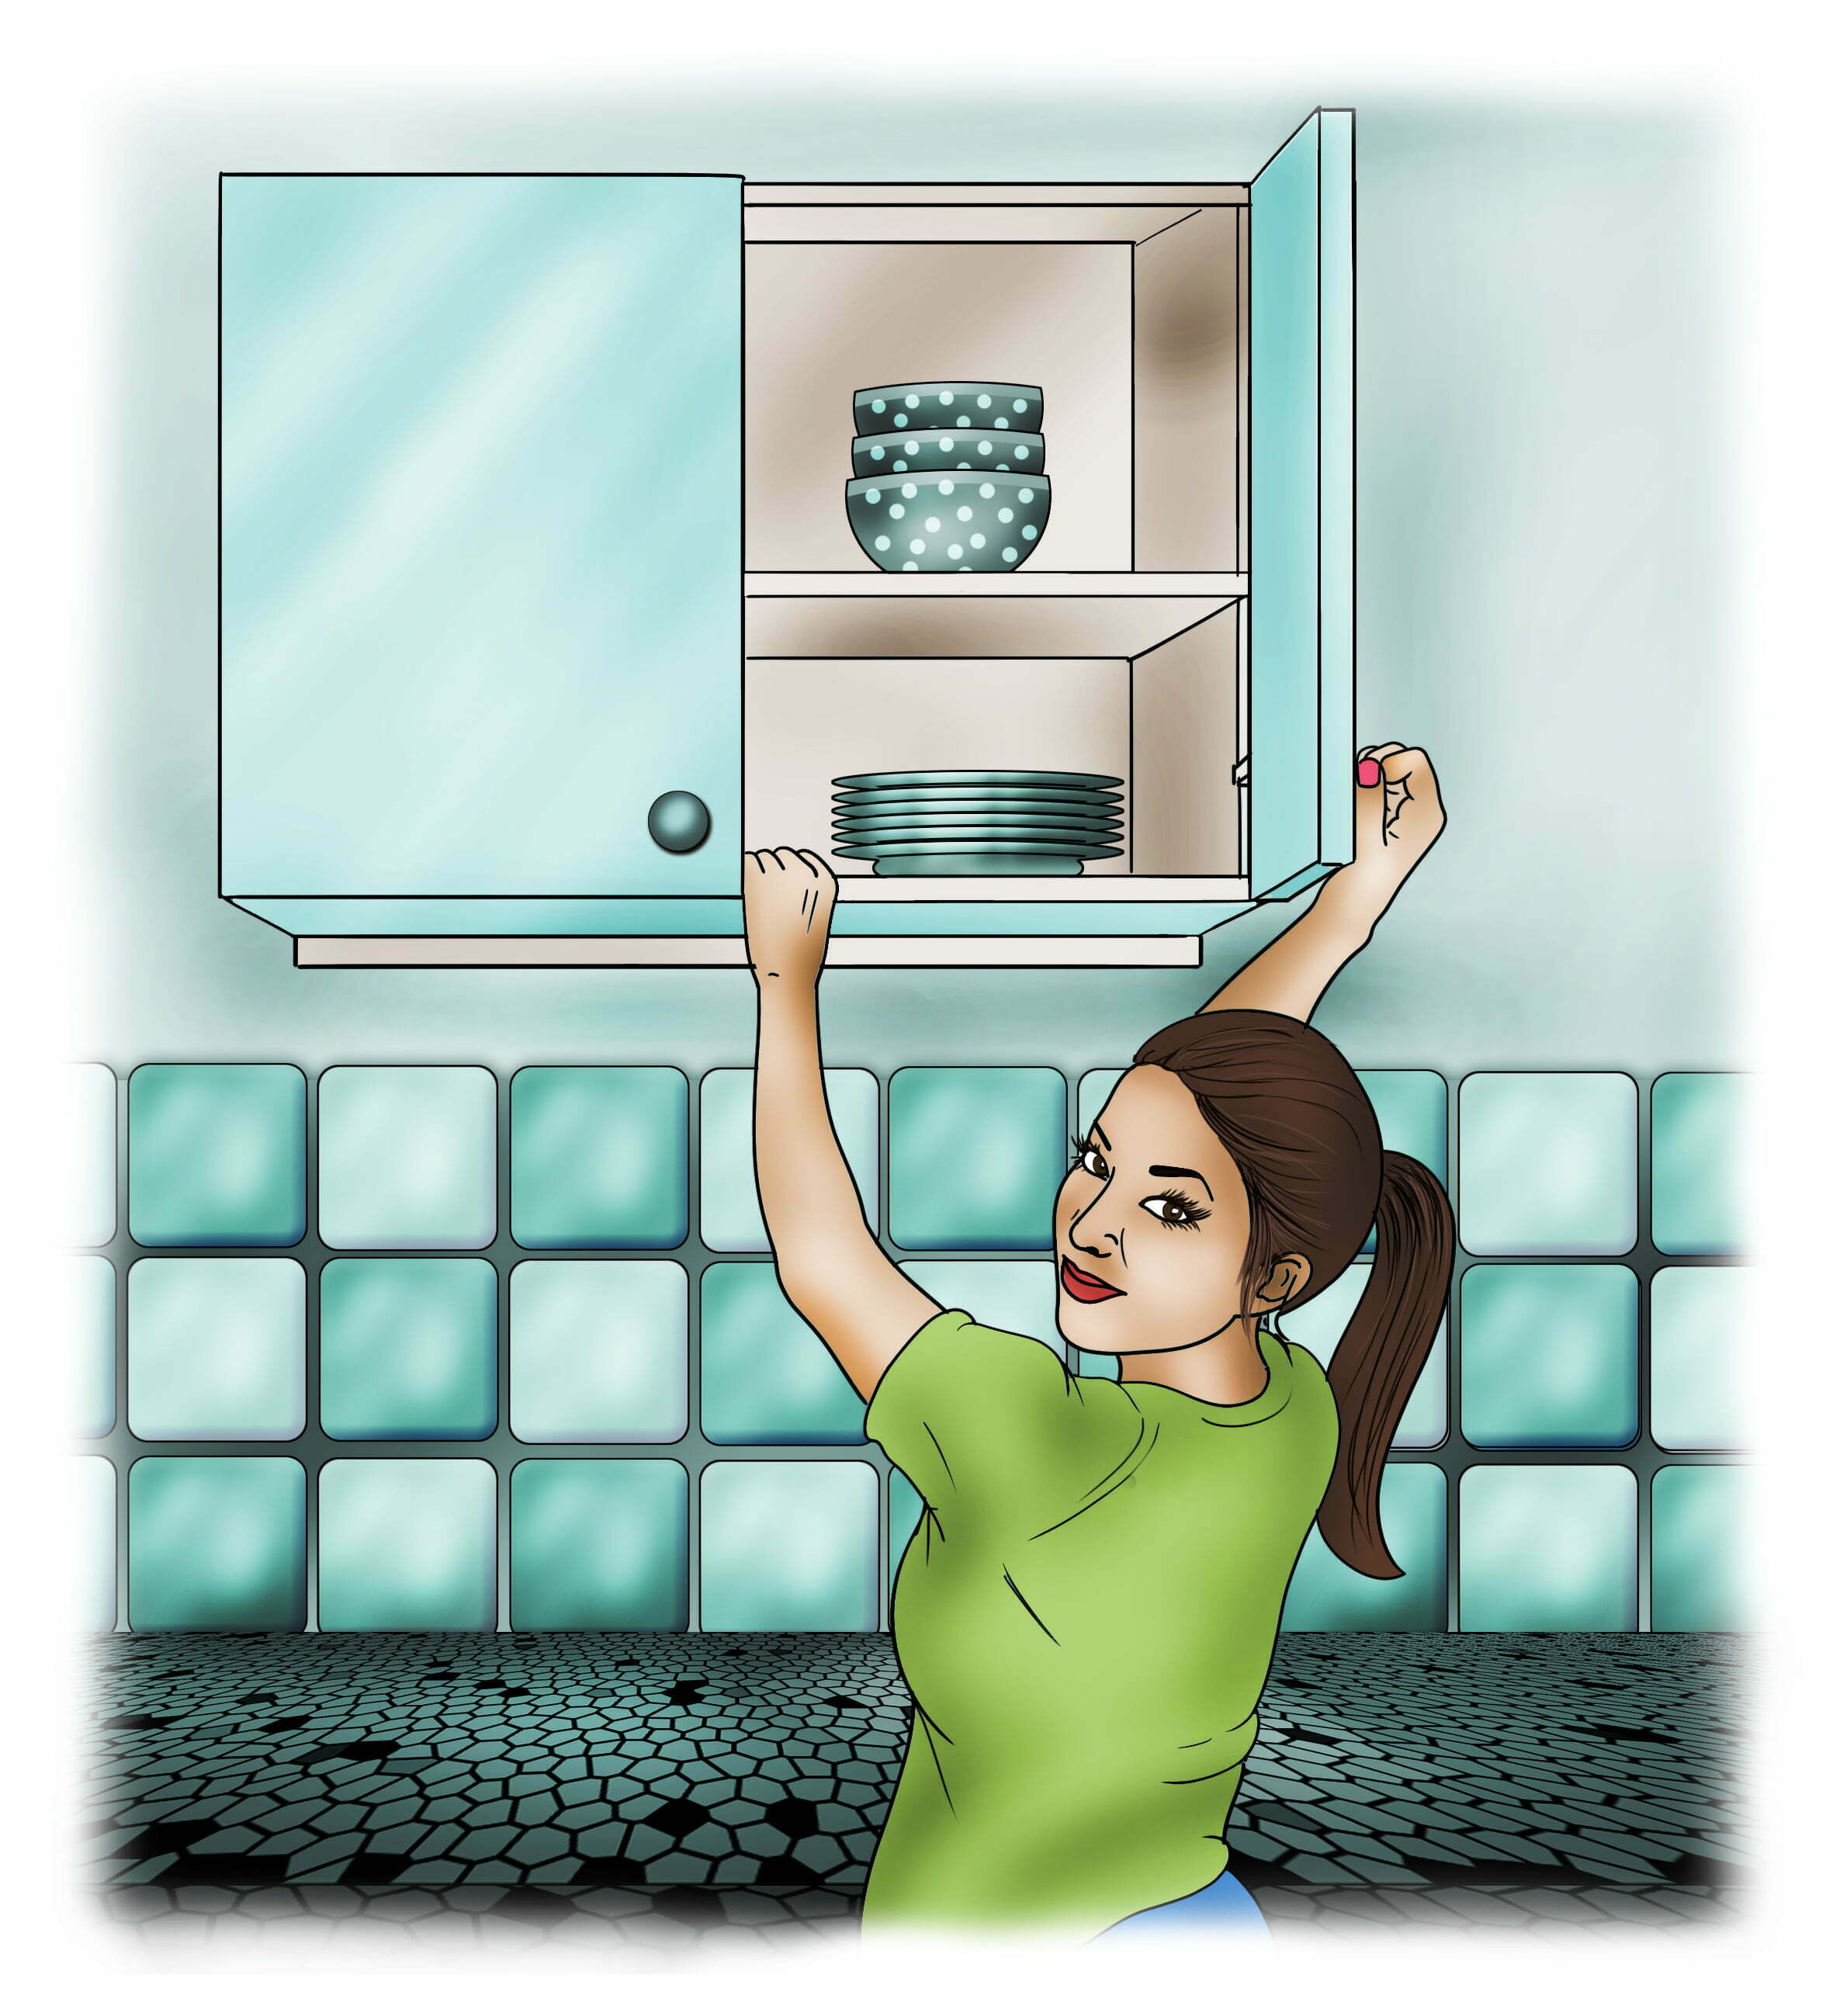 Open any wall mounted cupboards